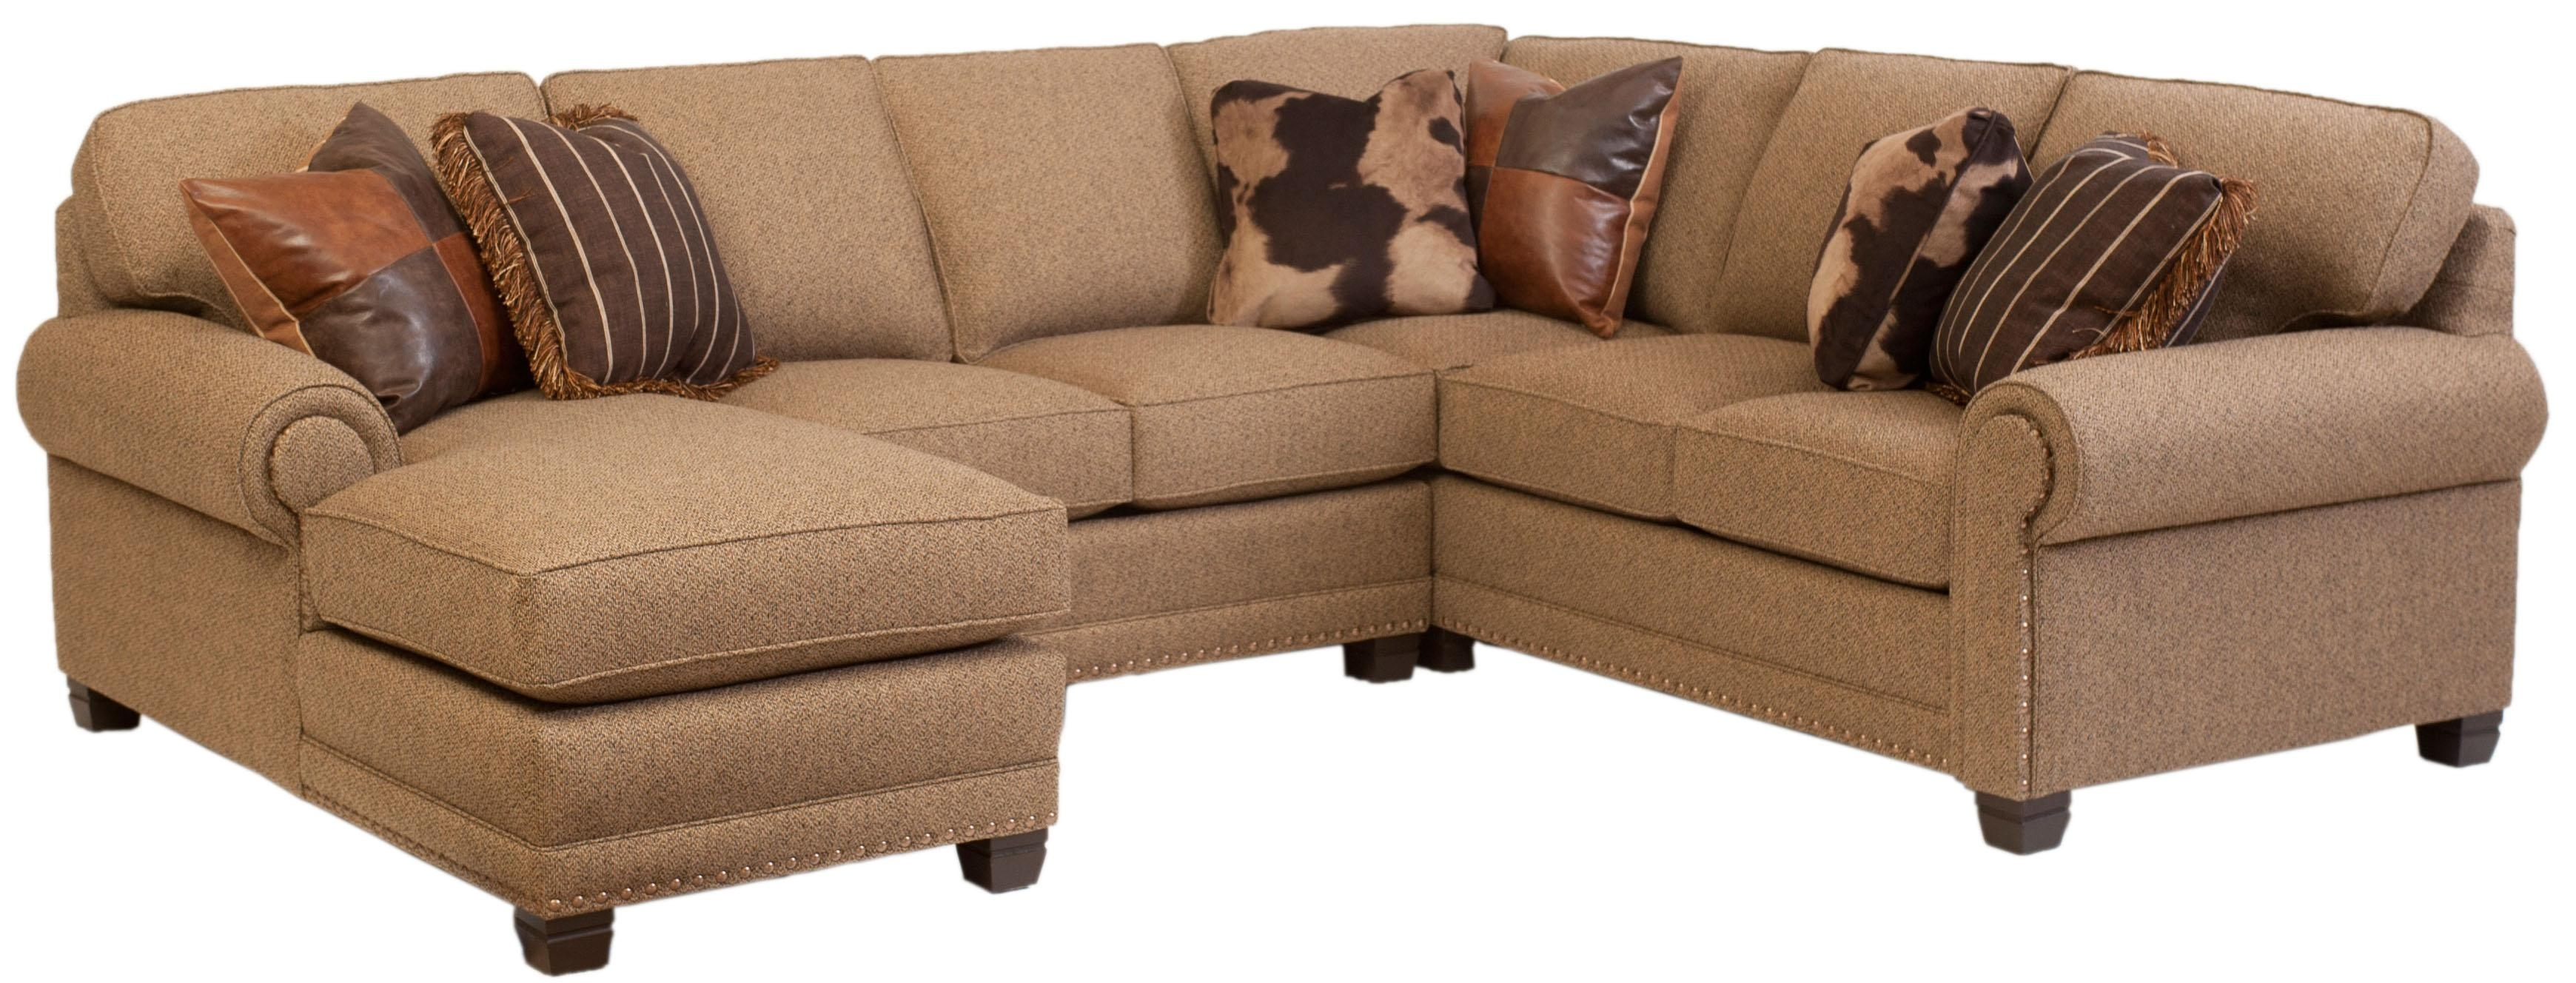 Bradley Sectional Sofa 52 With Bradley Sectional Sofa For Bradley Sectional Sofa (Image 5 of 15)